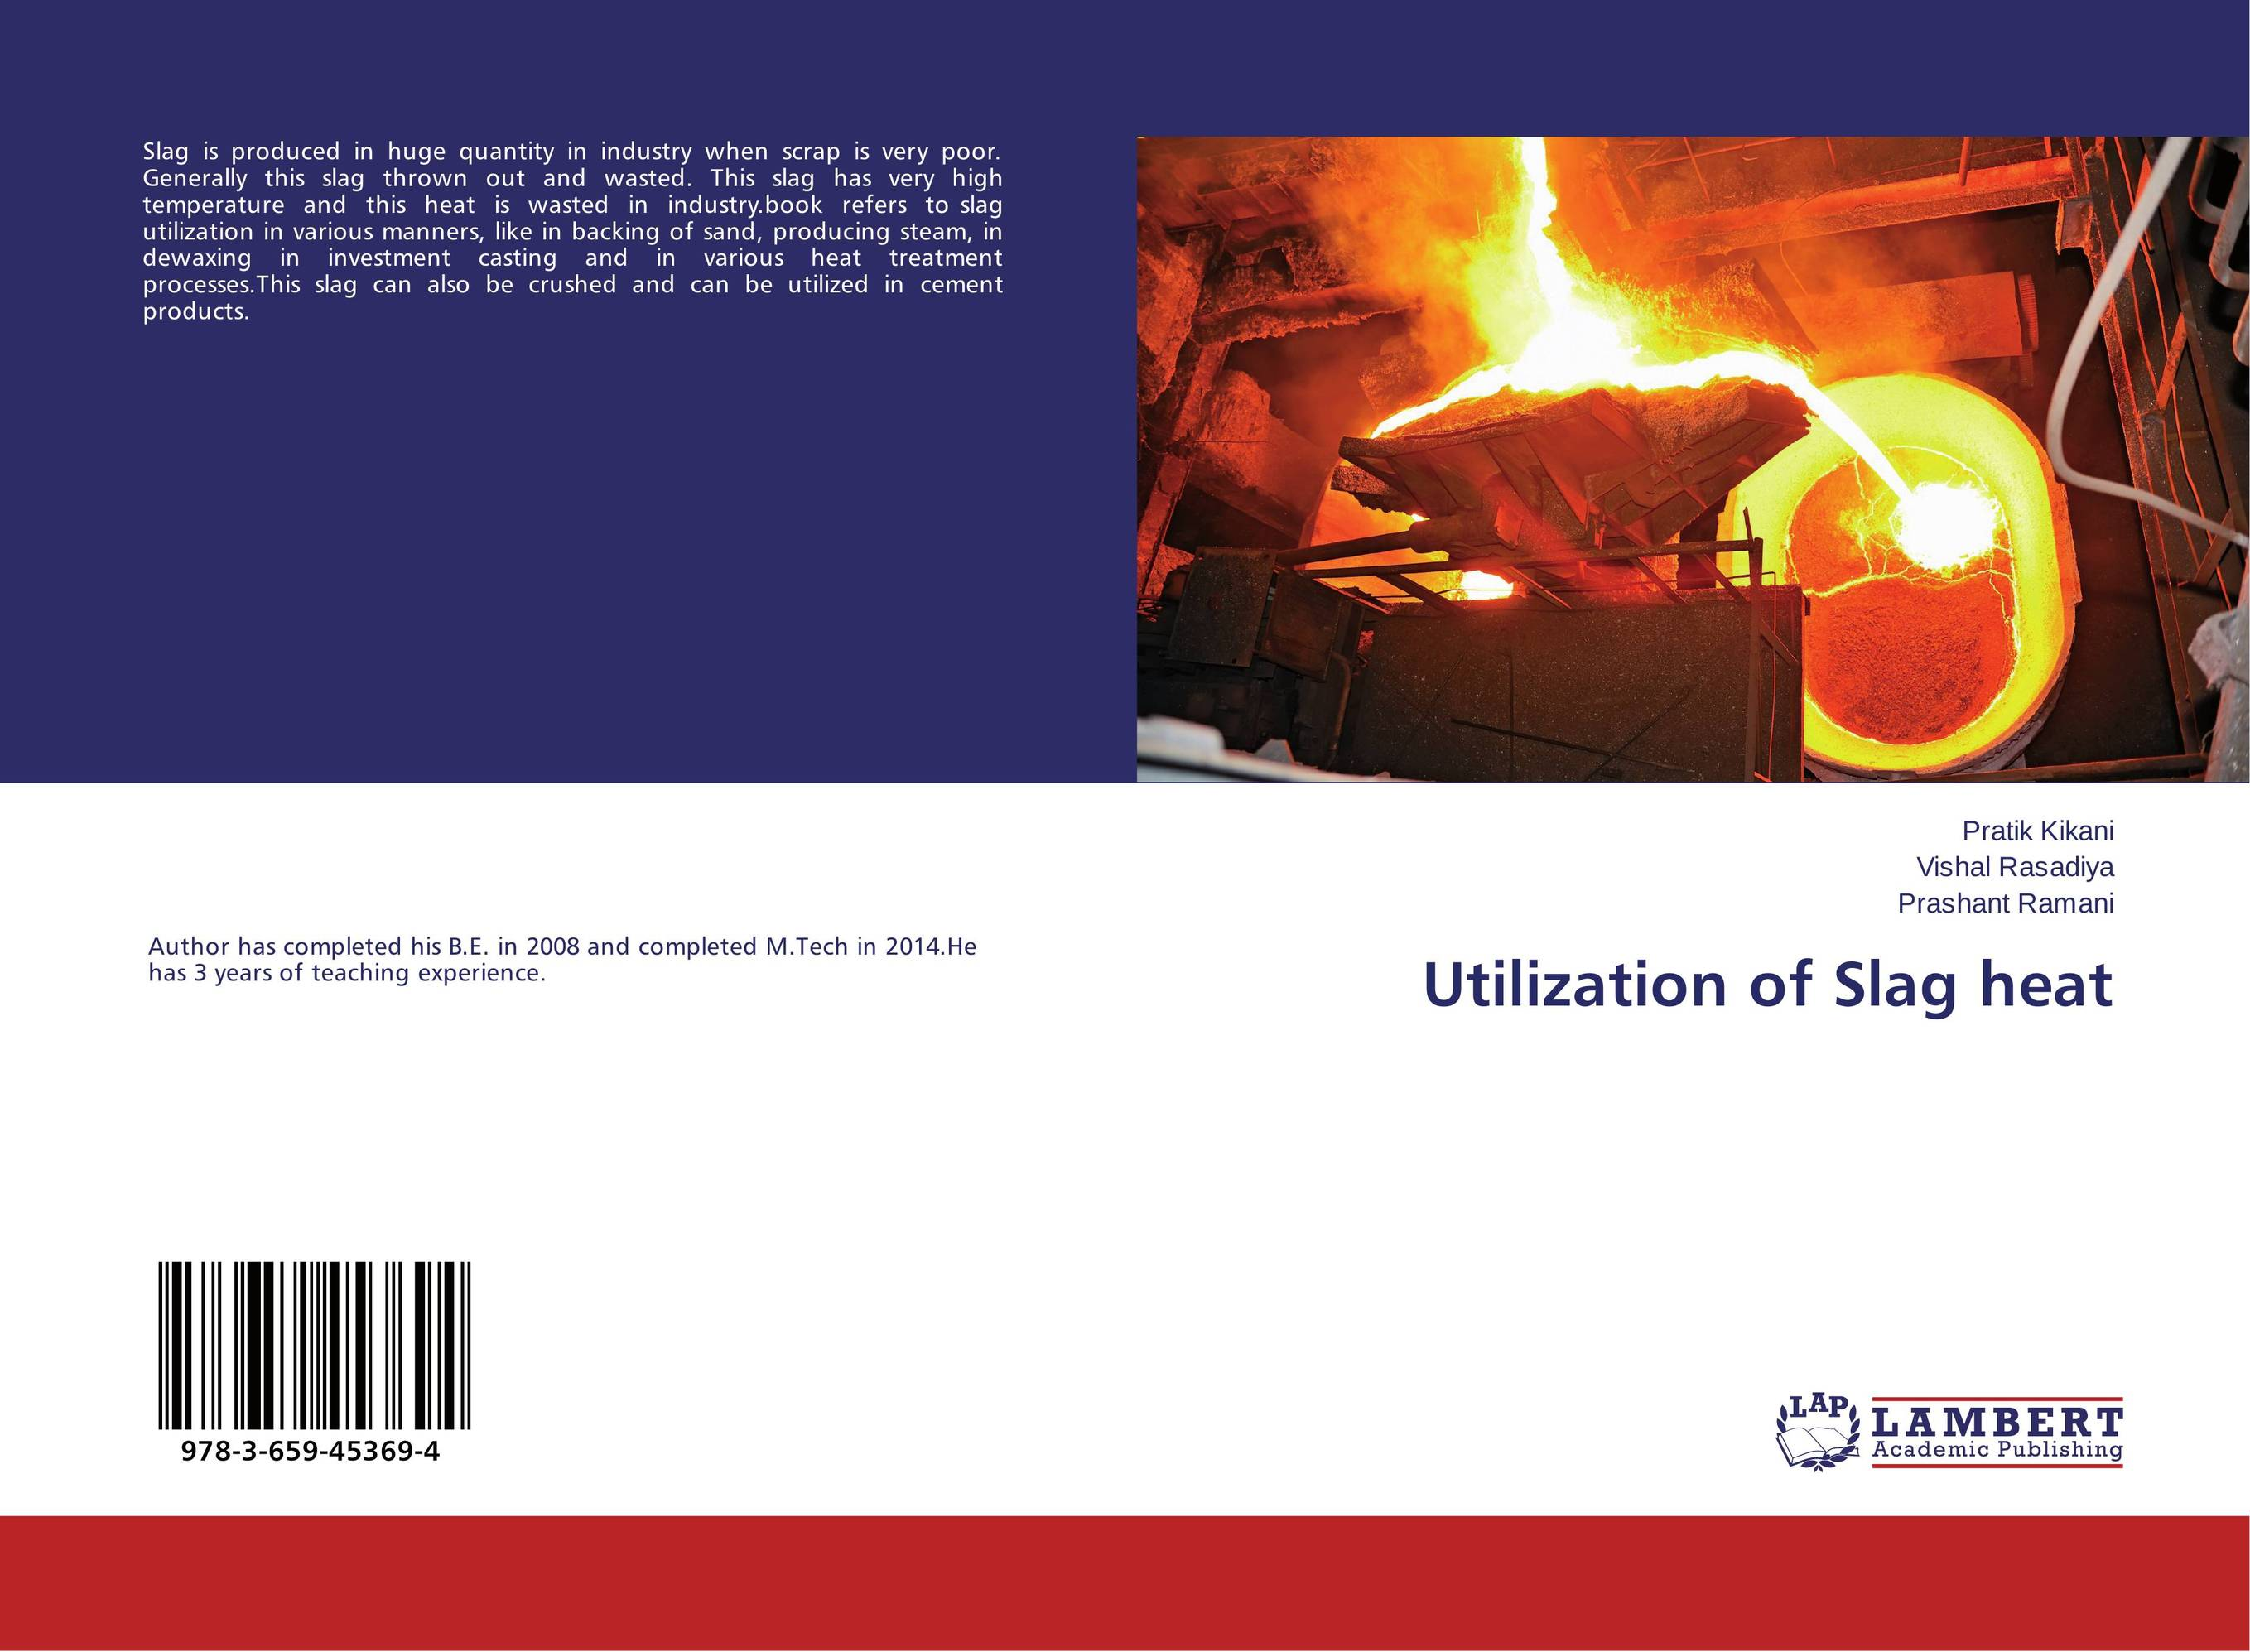 Utilization of Slag heat